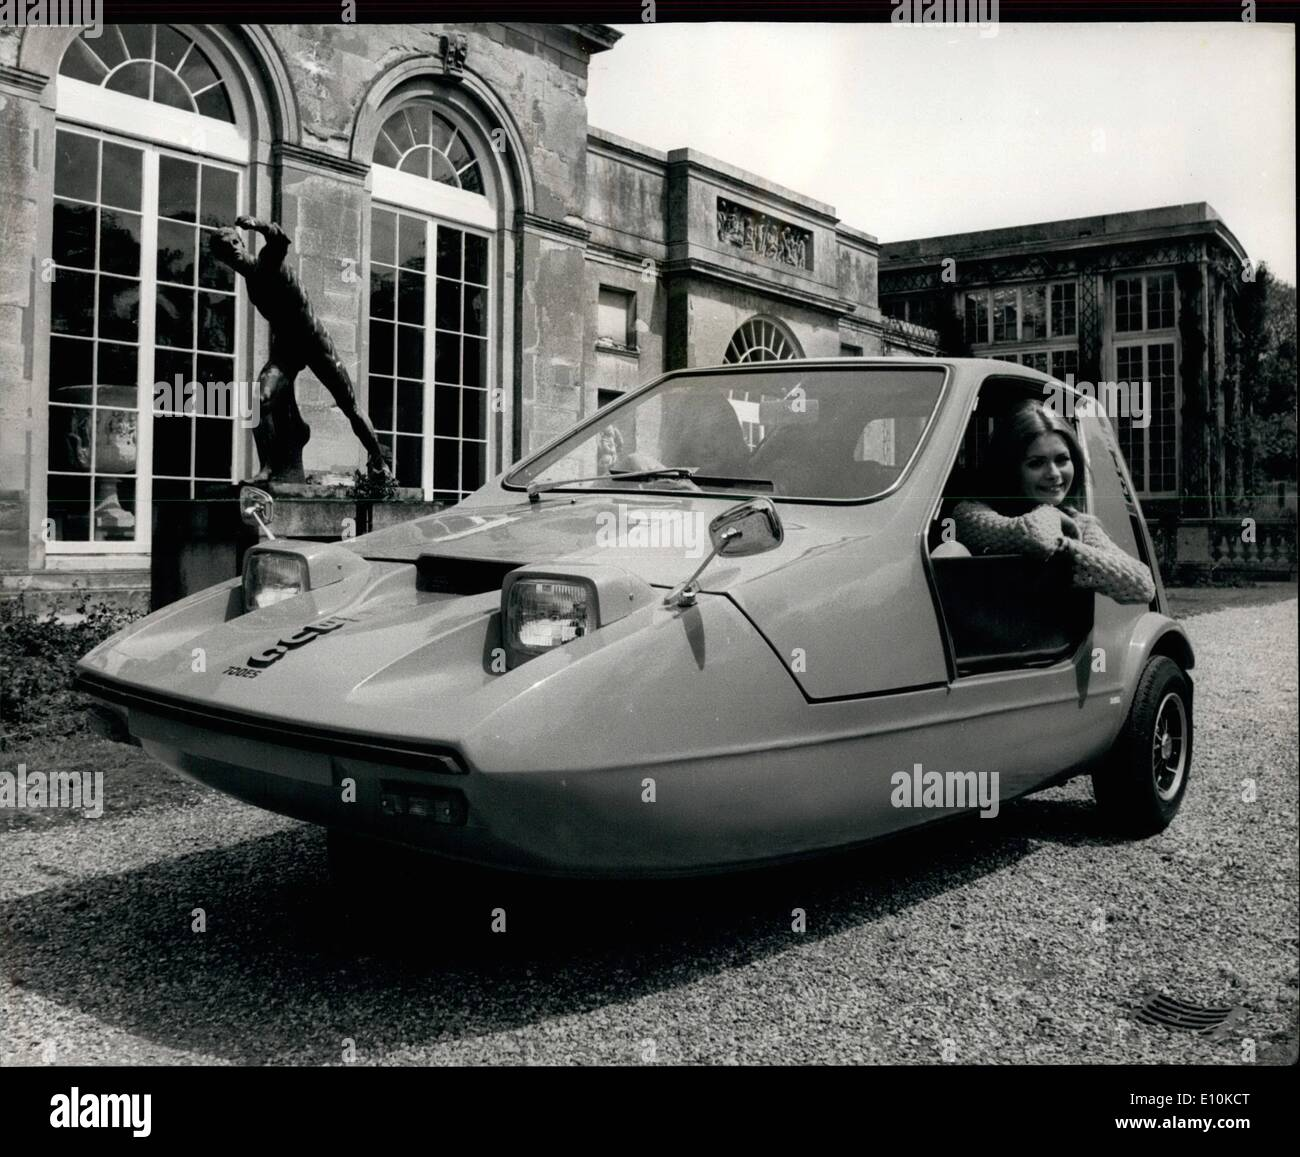 May 05, 1973 - The ''Bond Bug'' - The youth car of the 70's'': The bond Bug, a revolutionary two-seater olni to be the first vehicle designed exclusively for the 17 to 25 age group. This new Raliant Motor Group producti launched with the confident  of it becoming as big a trend-setter in its field during the 1970's as the Mini was in the last . Three versions are being offered, they are the  700 ''Bond Bug model (priced at 548.0.04) the 700 (579.7.0) which has full weather equipment ans styling rafinemen the 700s (29.19.) all world  - Stock Image